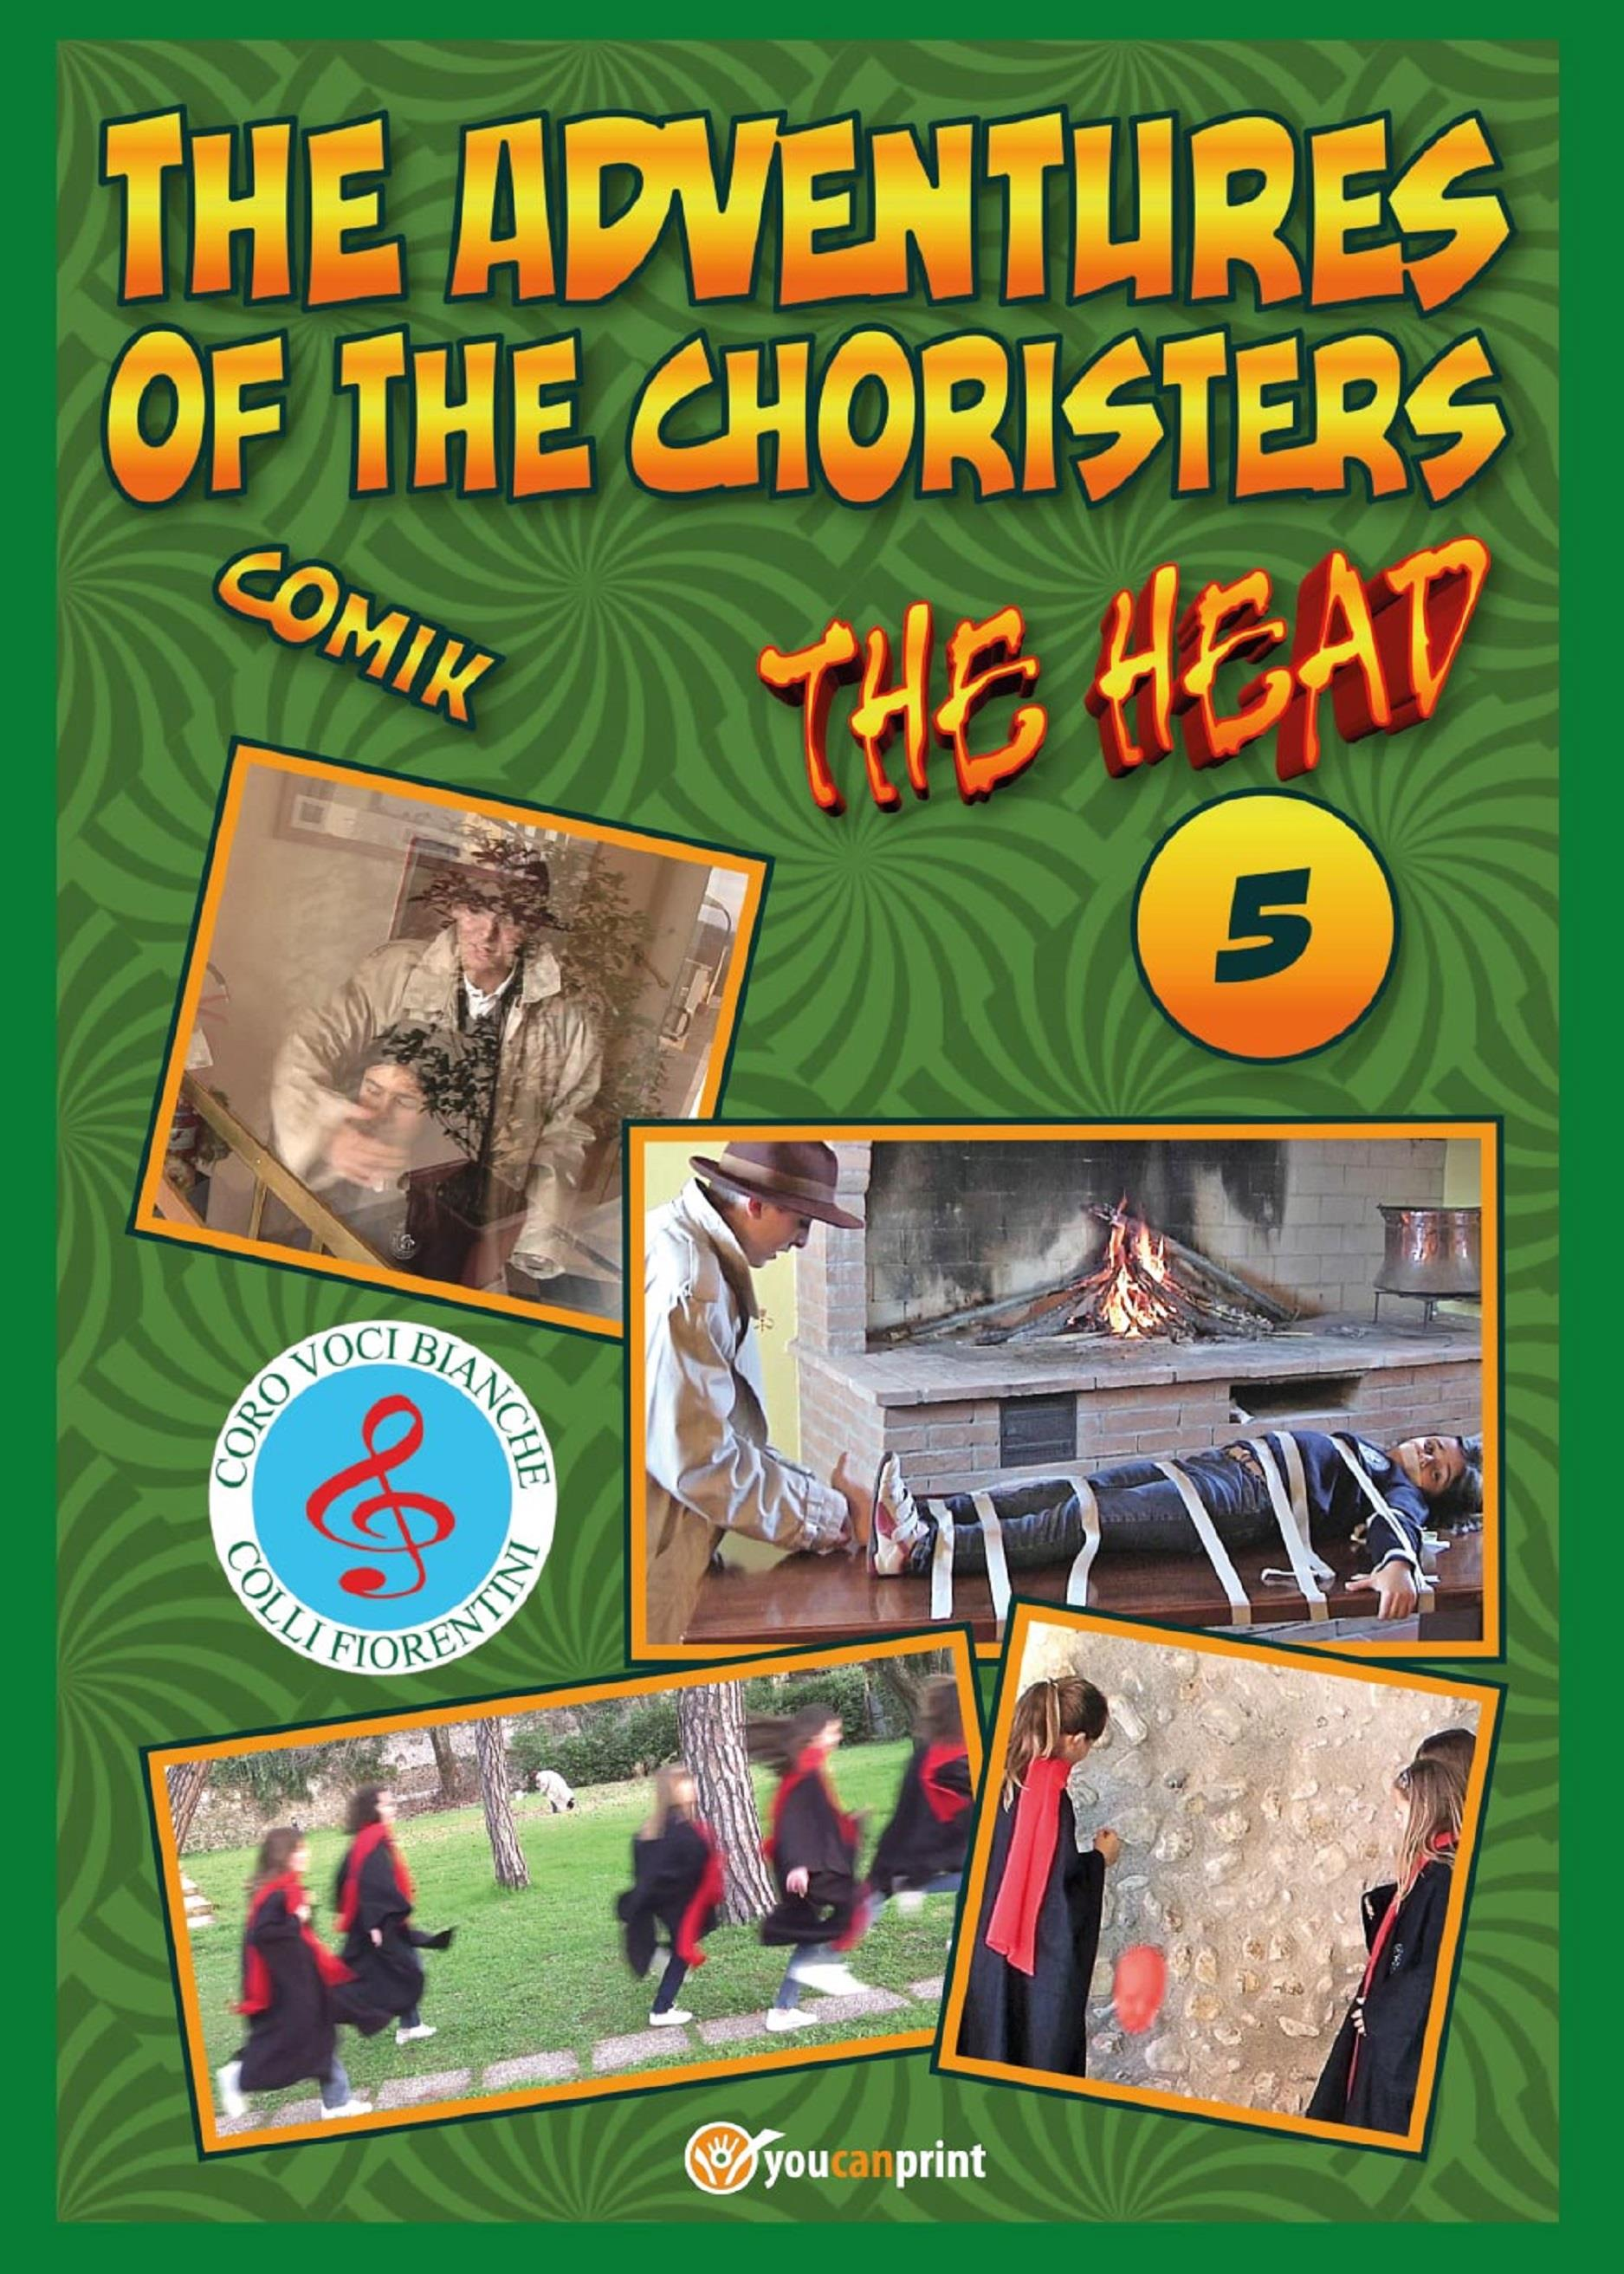 The adventures of the choristers 5 - The Head